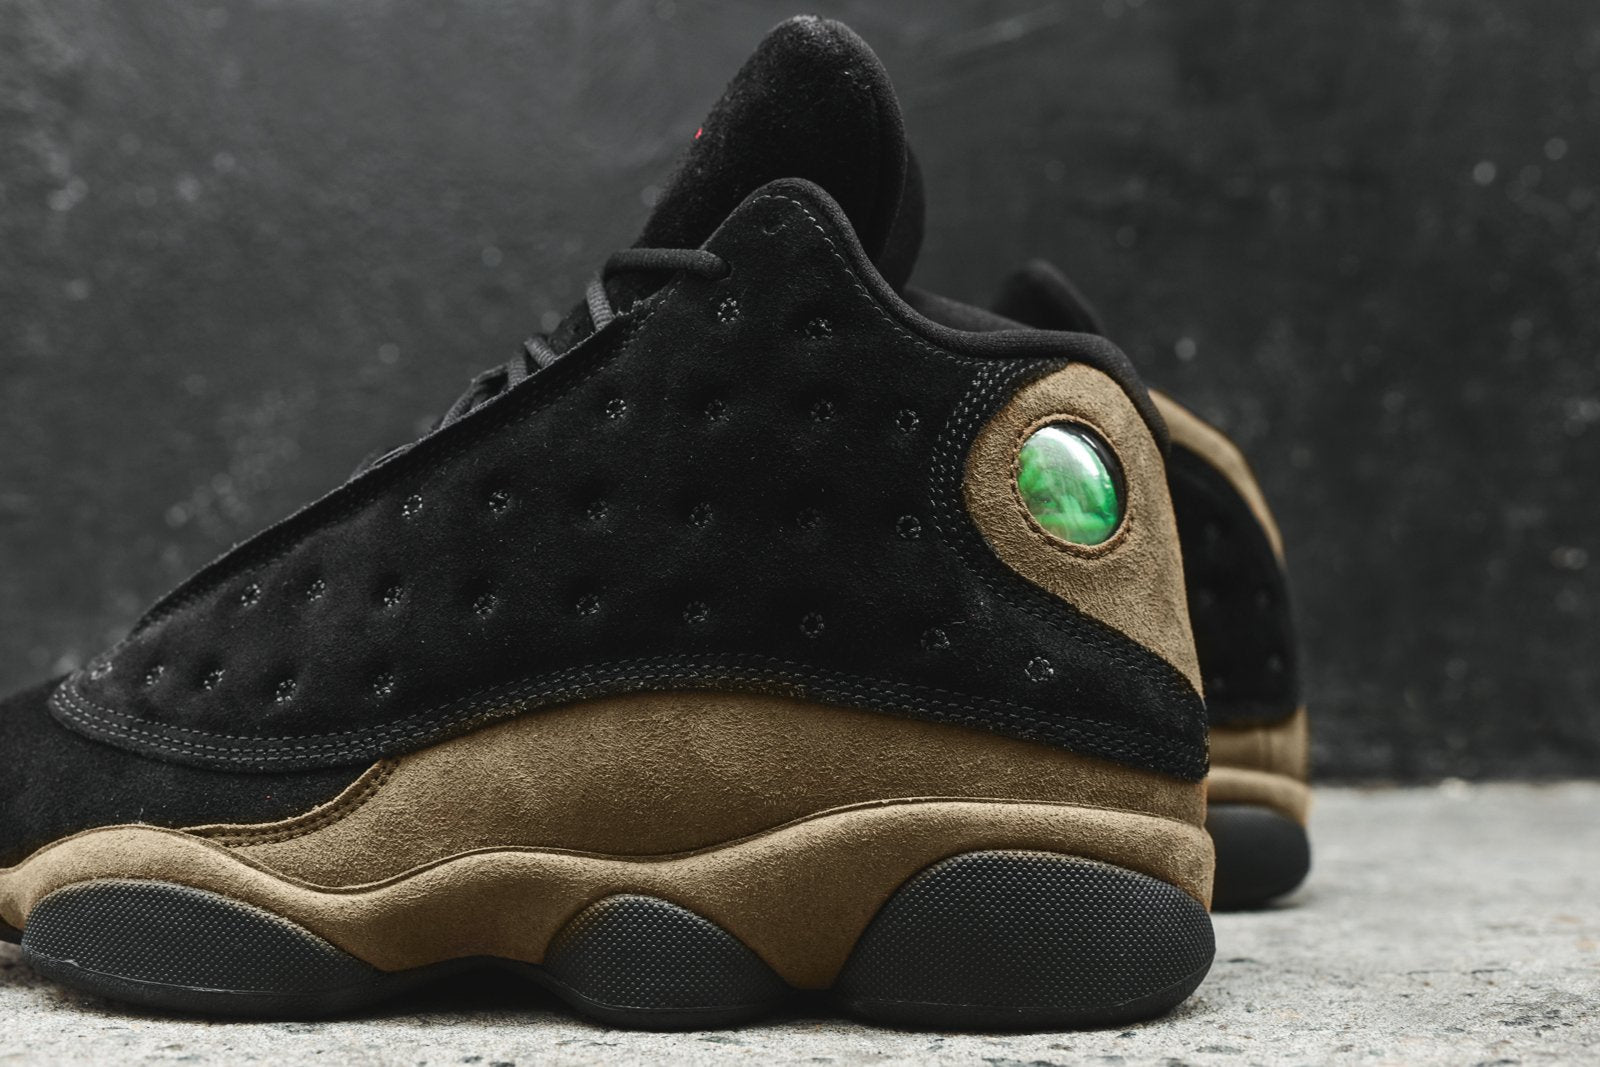 buy online fc87f 98884 Nike Air Jordan 13 Retro - Black / Olive – Kith